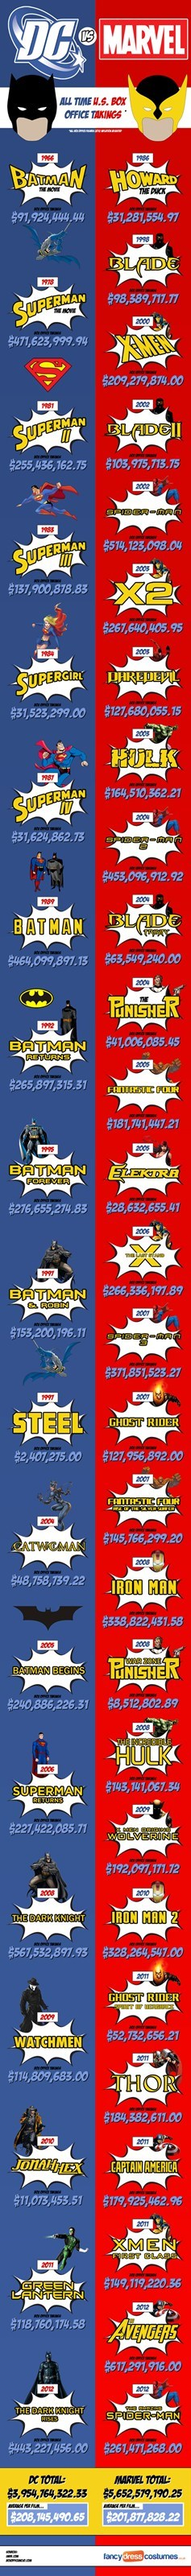 ROFLrazzi: DC vs Marvel: Who Wins at the Box Office?